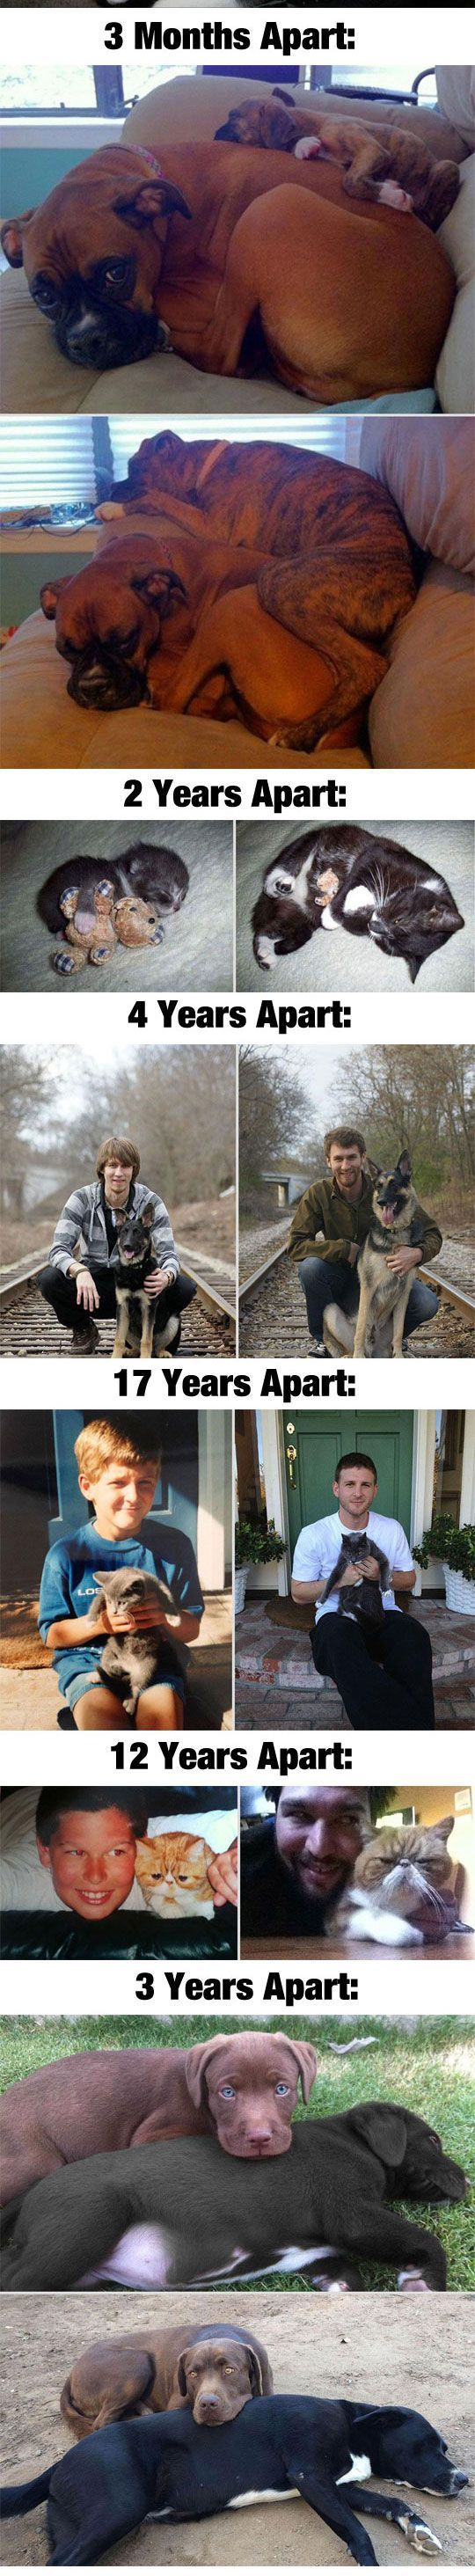 Before and after pics of pets growing up